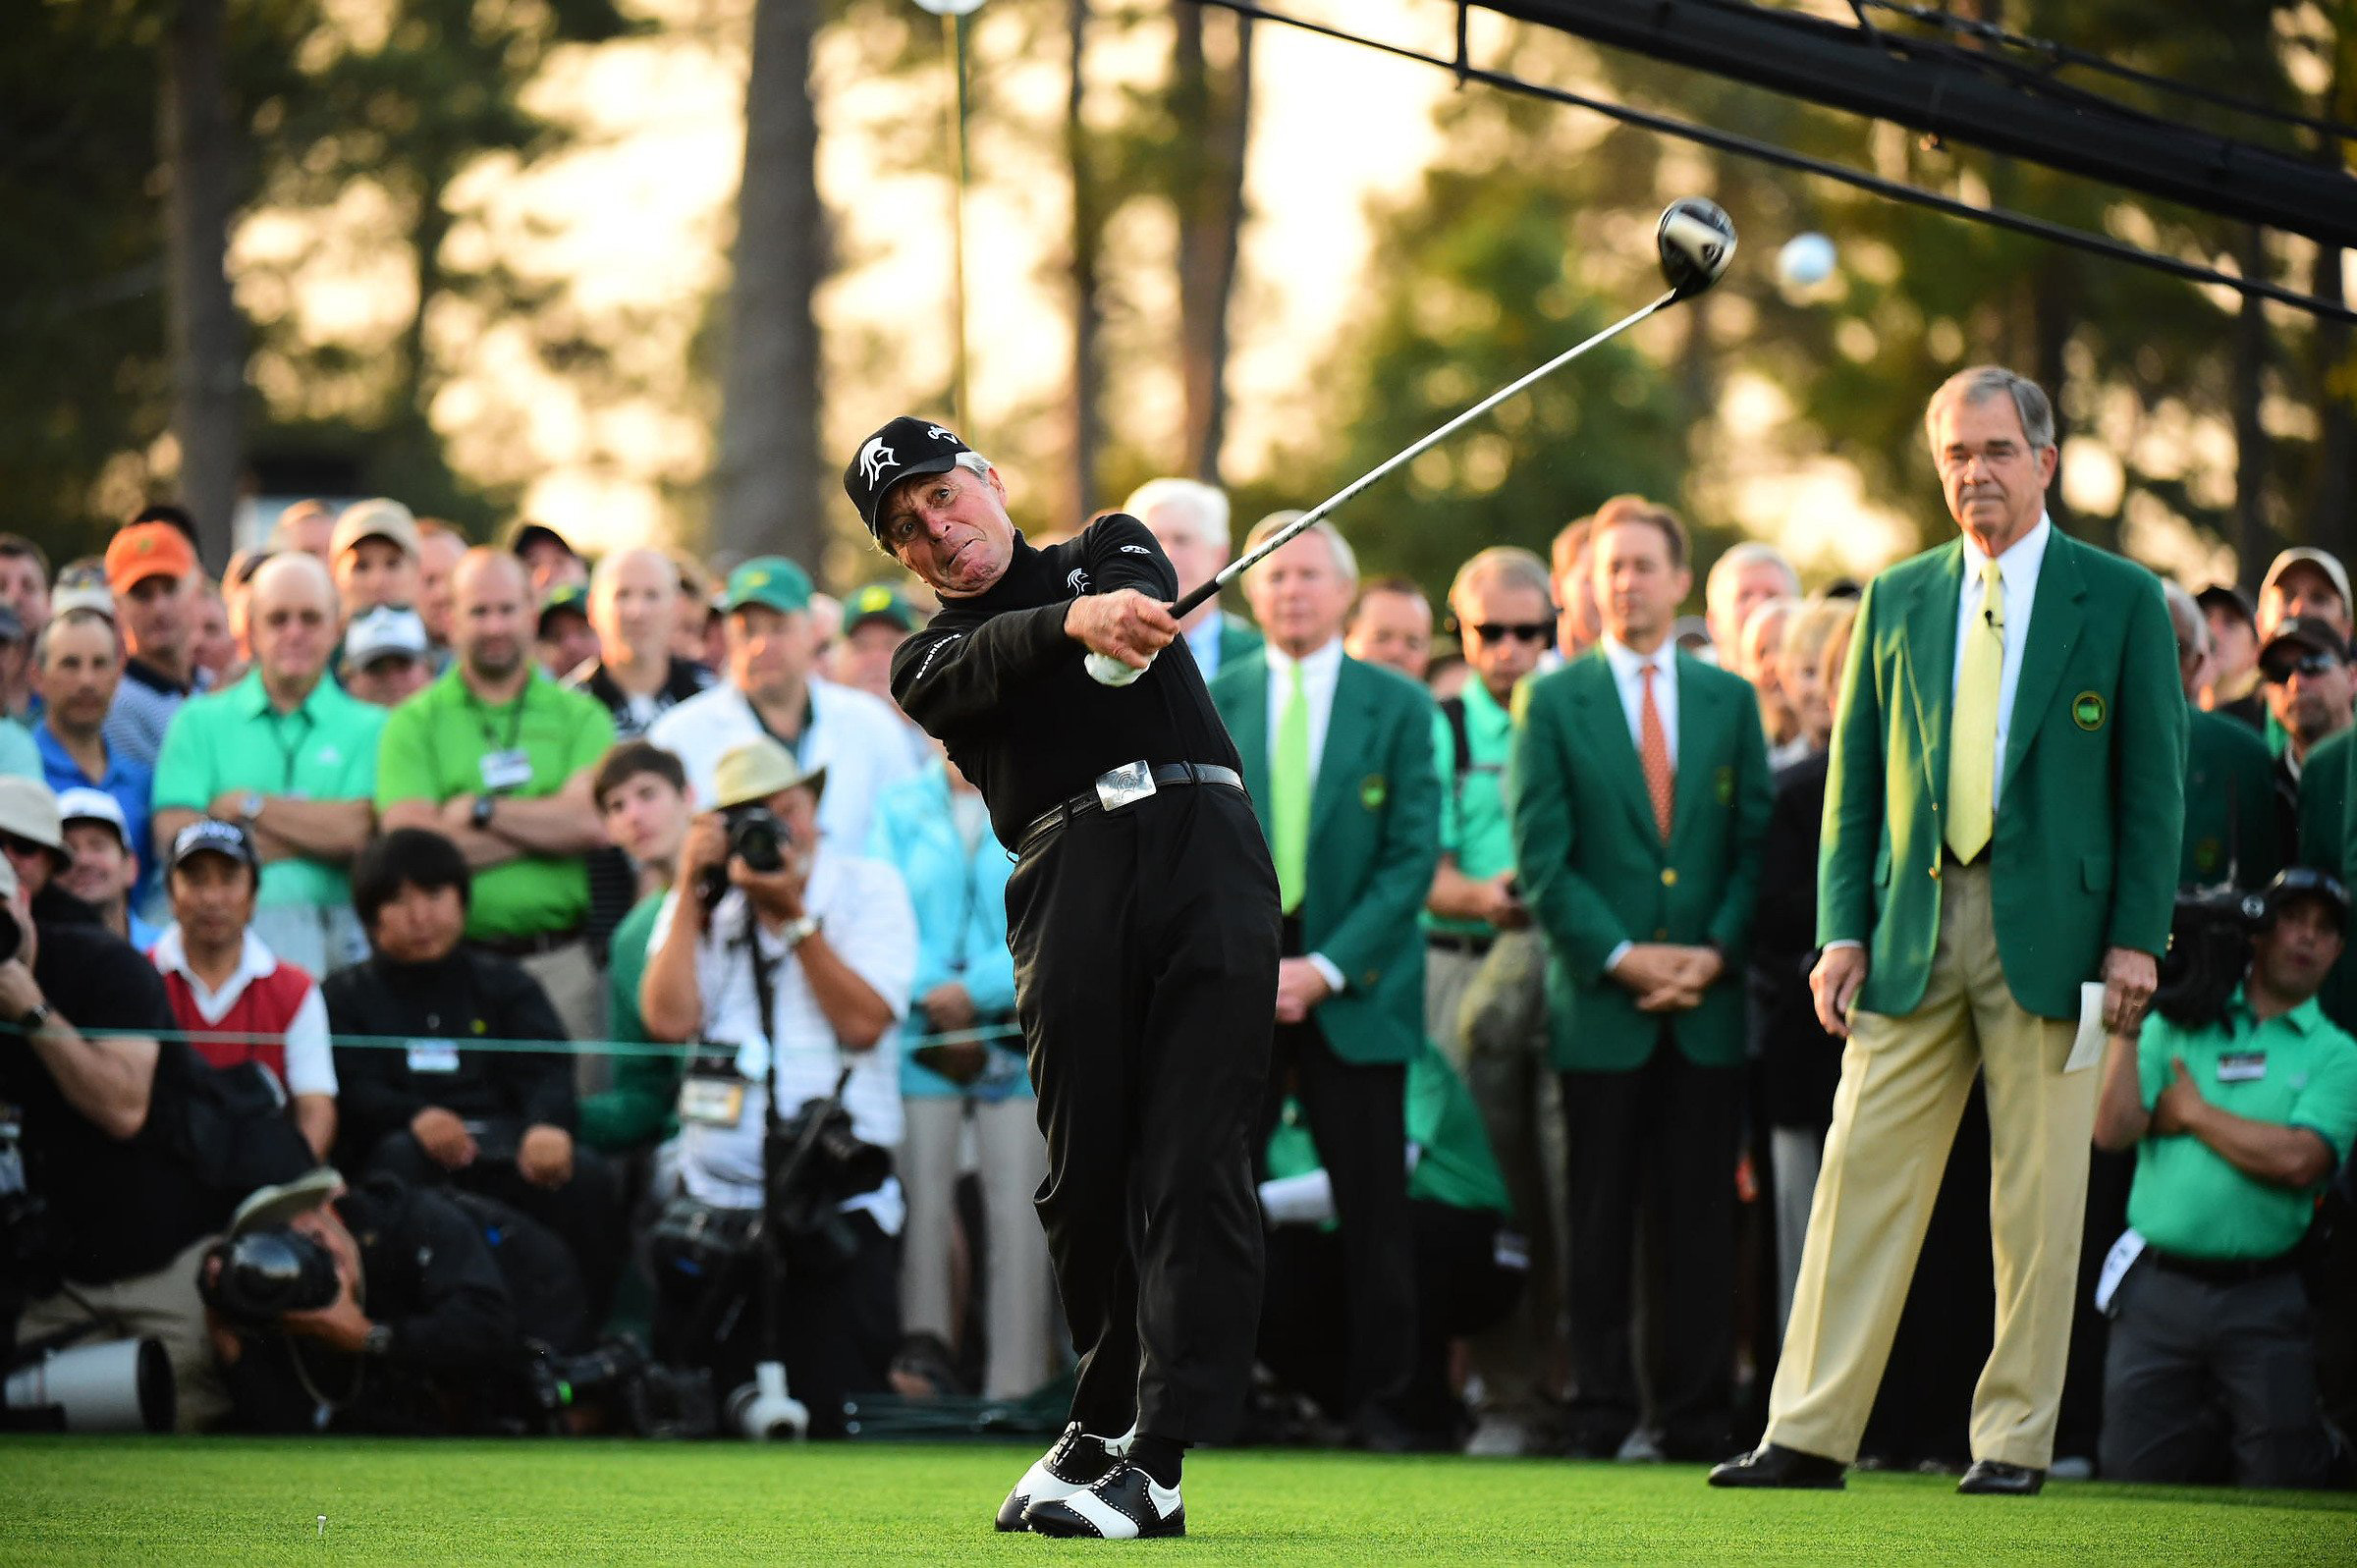 Gary Player takes a healthy swing on his ceremonial tee shot Thursday morning.